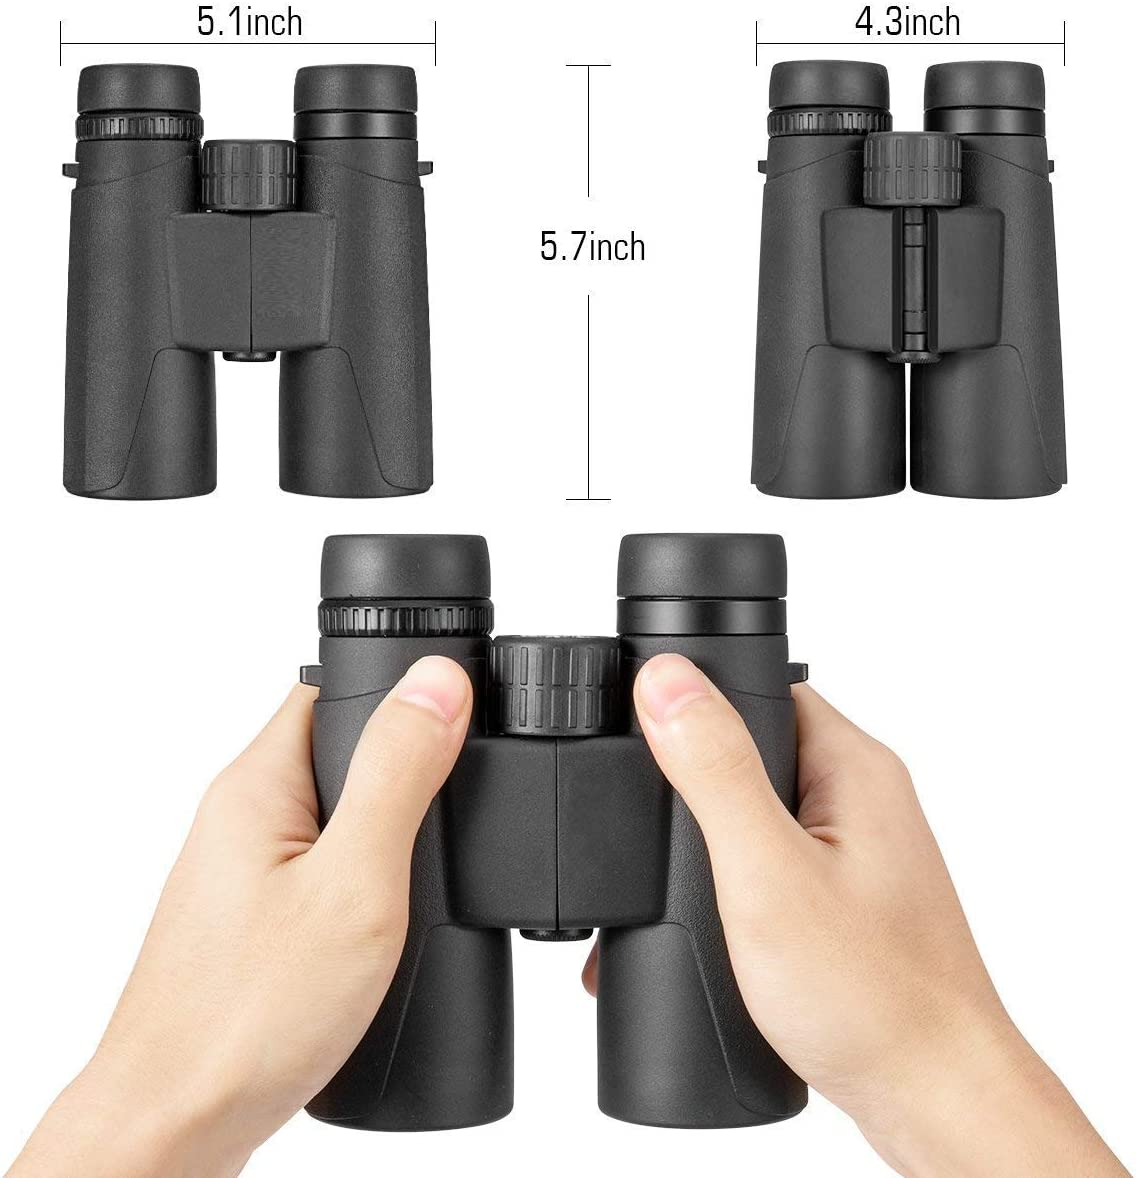 10×42 Binoculars for Adults, Professional Binoculars Compact for Hunting Bird Watching Outdoor Sports, Waterproof Fog-Proof Design,Good Choice for Adults